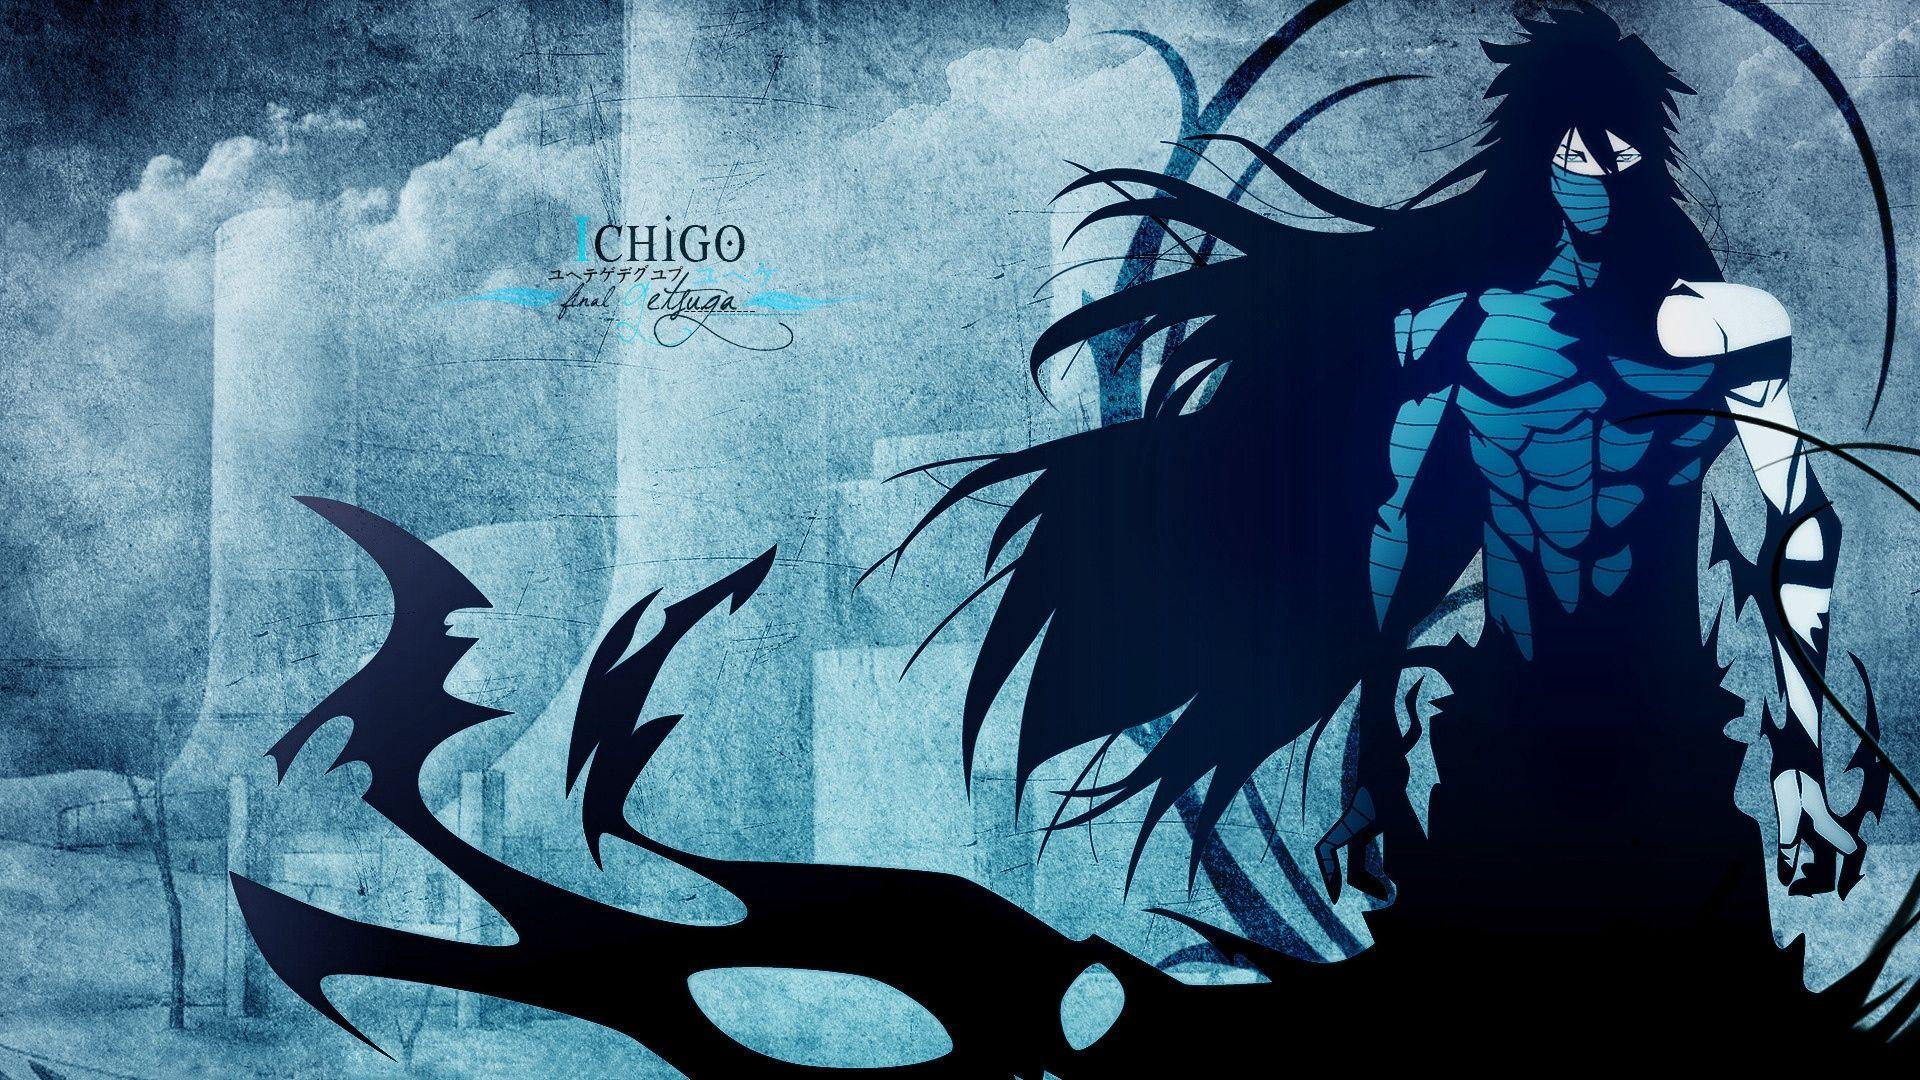 Download Wallpaper 1920x1080 Ichigo Mugetsu Bleach Final Getsuga